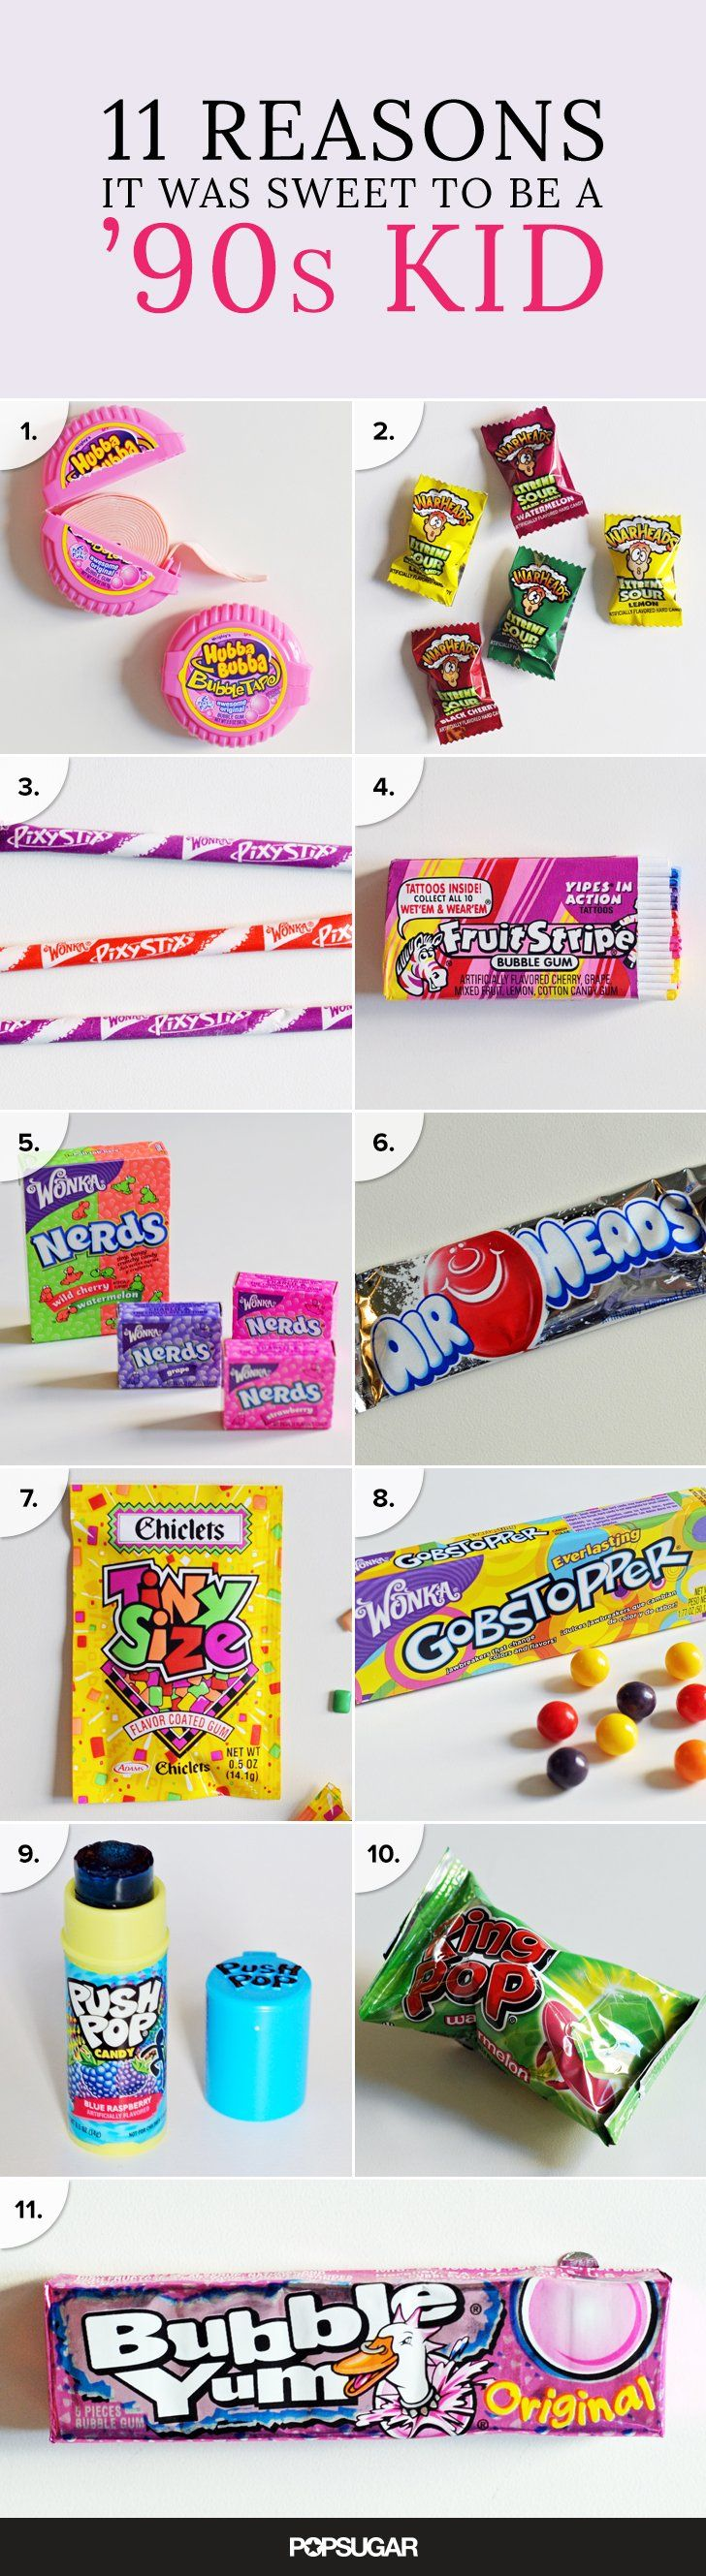 '90s kids know what's up when it comes to candy! If this doesn't make you feel nostalgic, we're not quite sure what will.